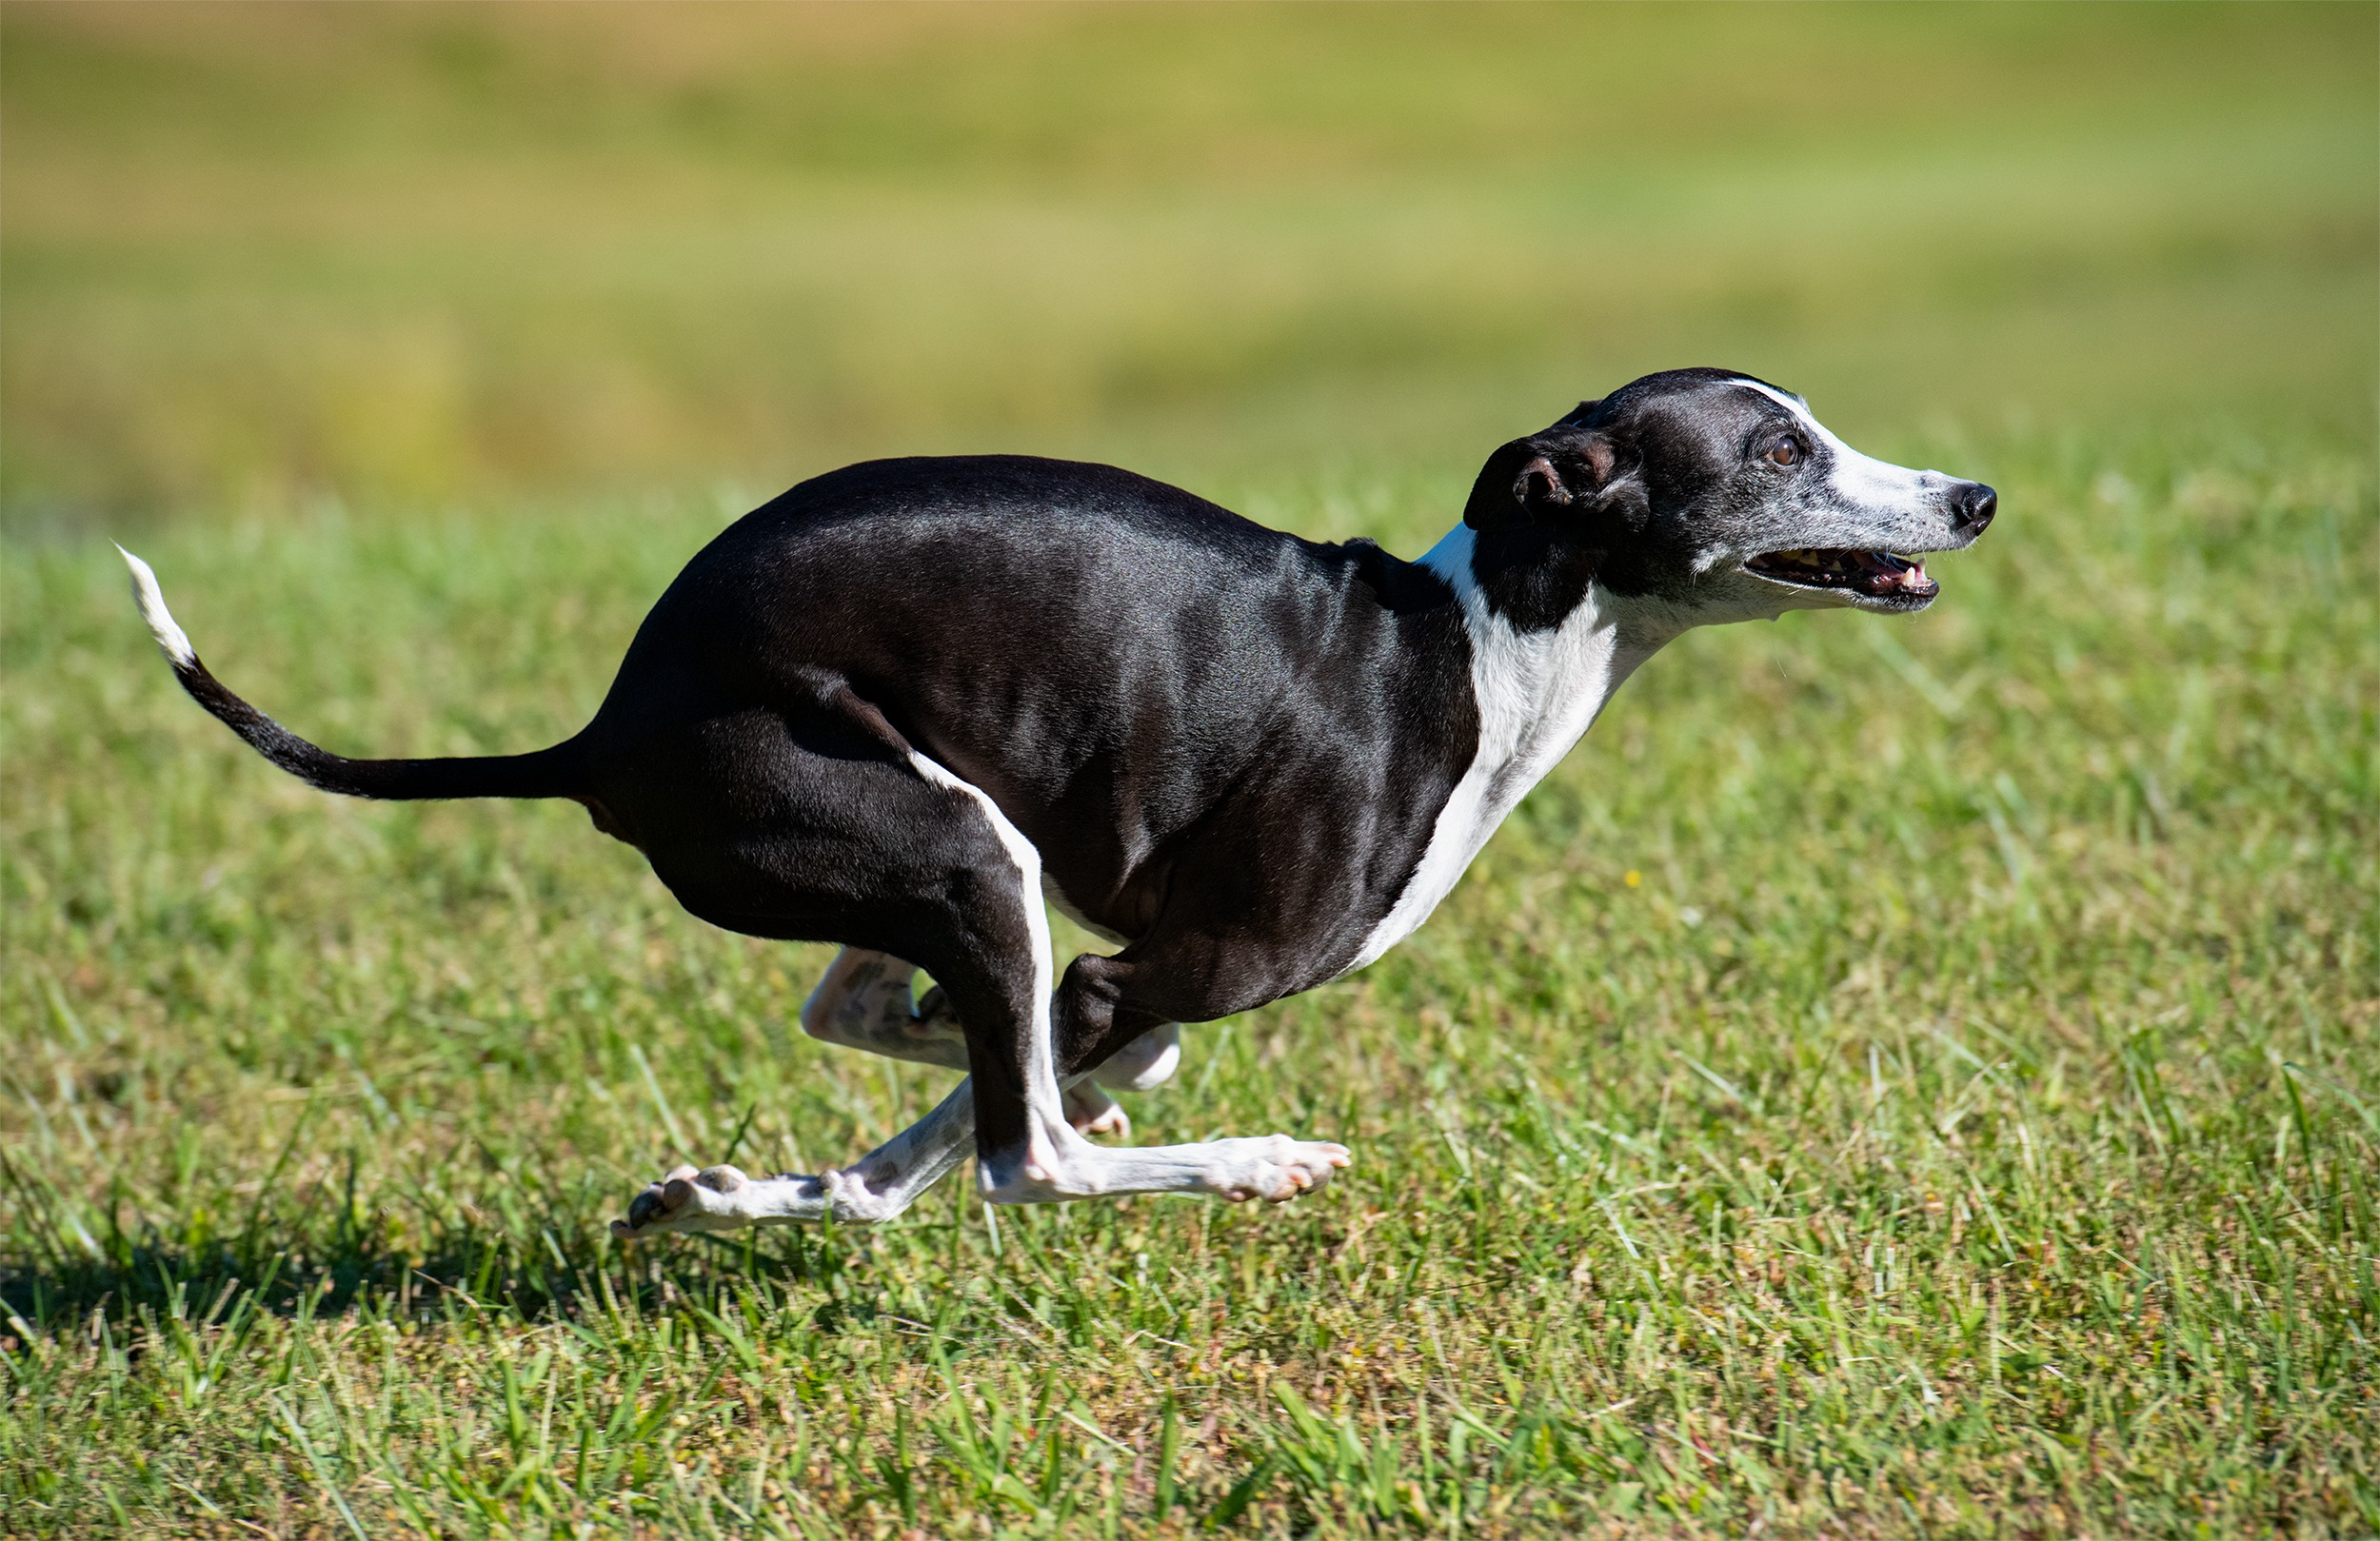 Zeppelin, an Italian greyhound, sprinting at full speed in mid air. Max speed of an Italian greyhound is 25 MPH.